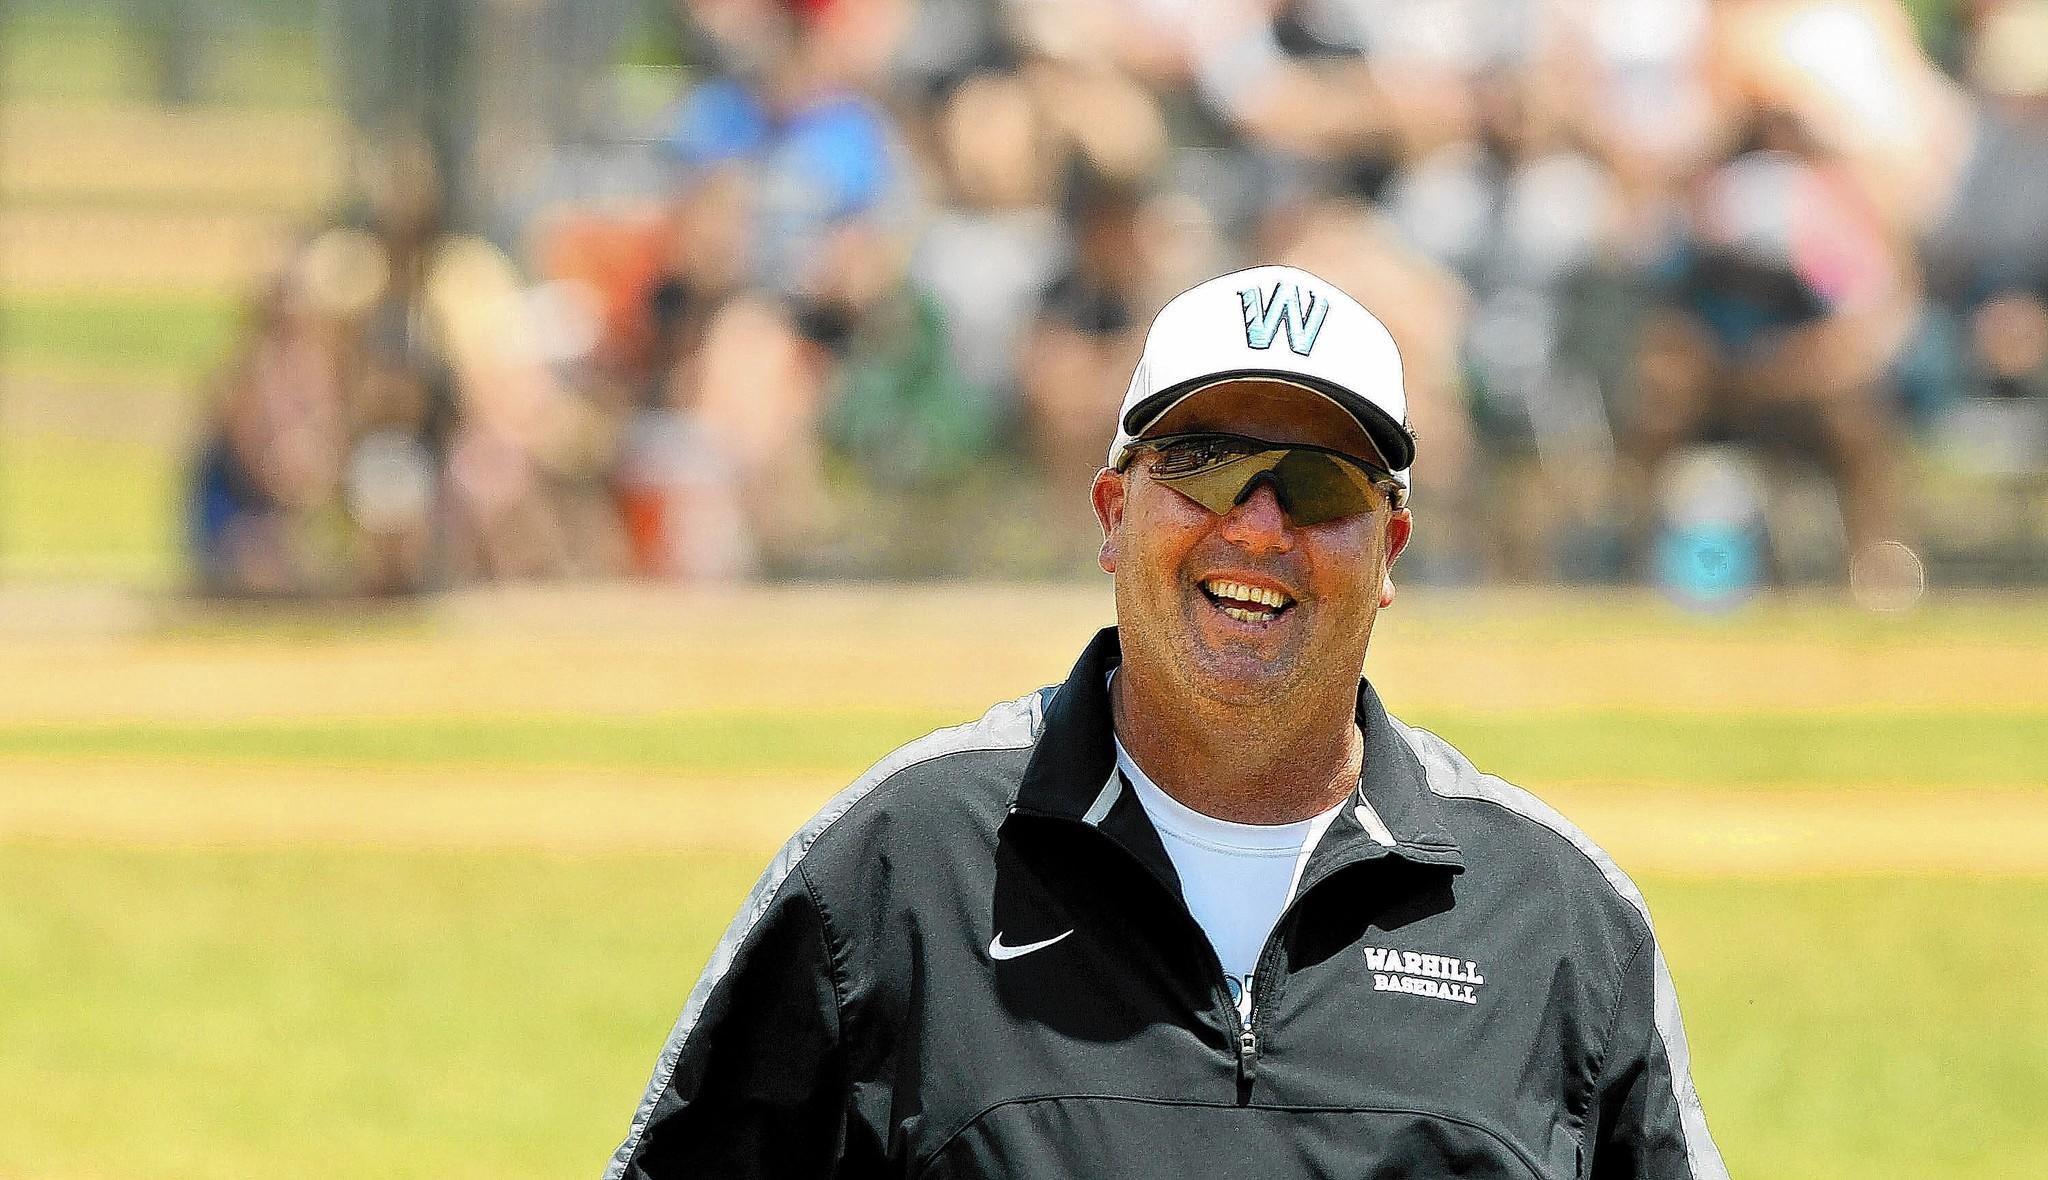 Joe Henzel's last game in five years as Warhill's baseball coach was a tournament loss to Lafayette, where he coached the previous 11 years.